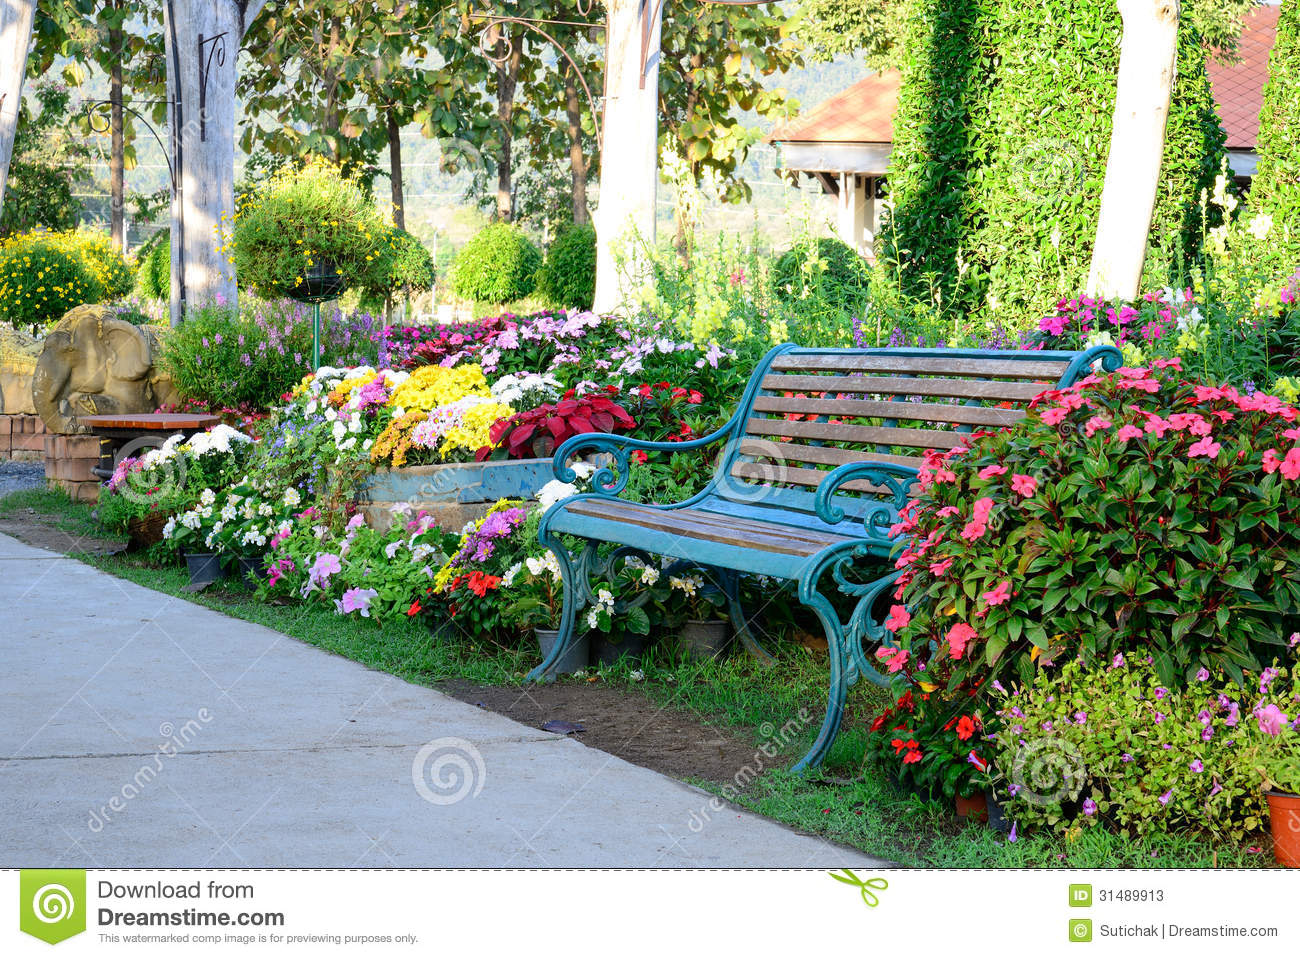 Flower Garden And Vintage Bench Stock Image - Image: 31489913